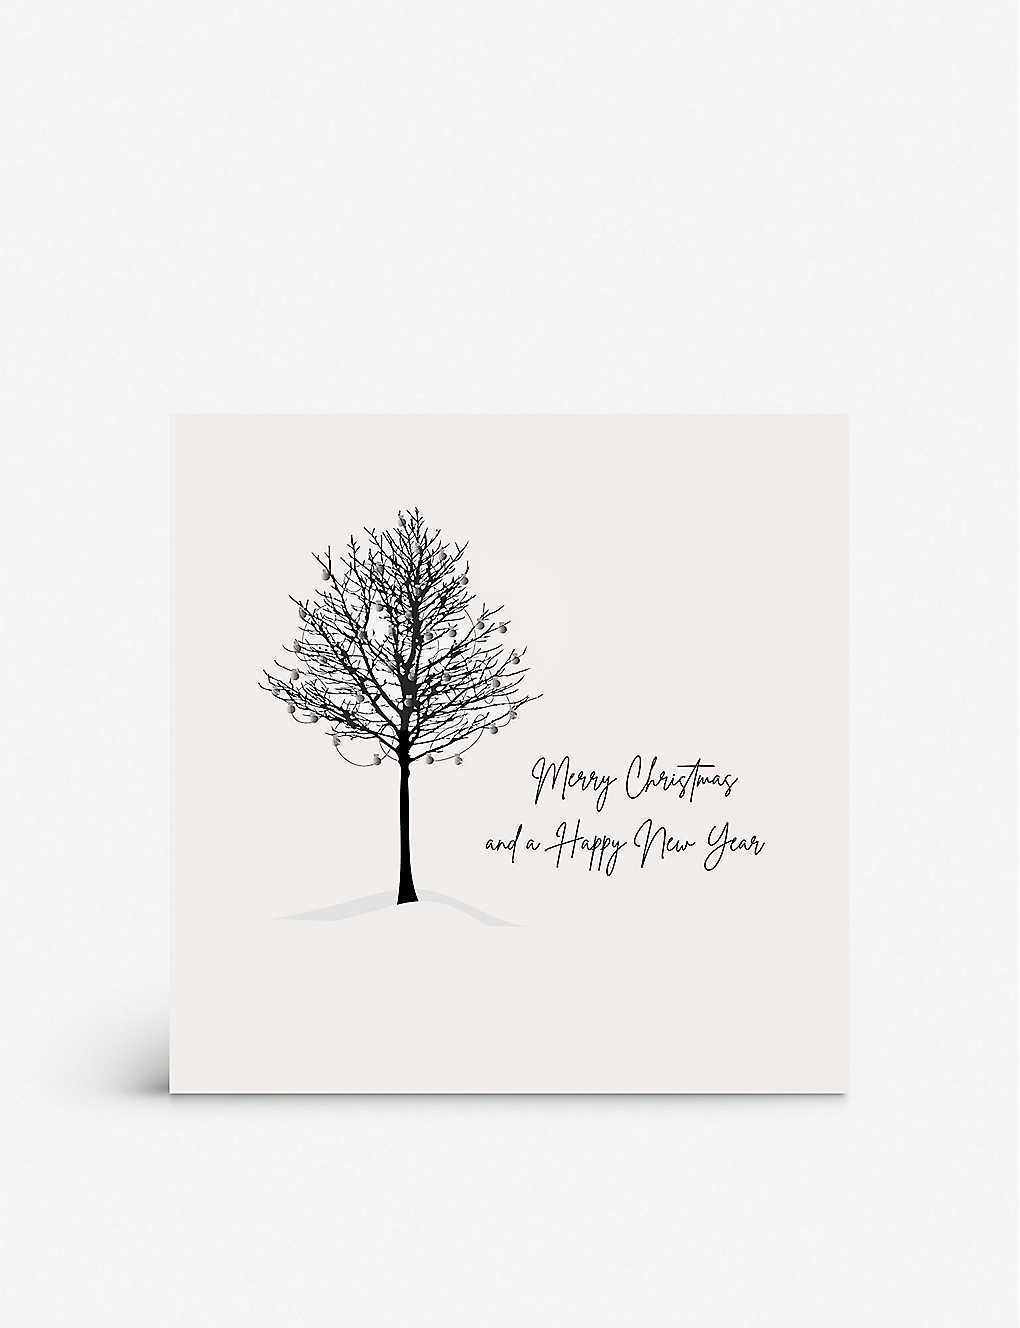 FIVE DOLLAR SHAKE: Merry Christmas and a Happy New Year greetings card 17cm x 17cm